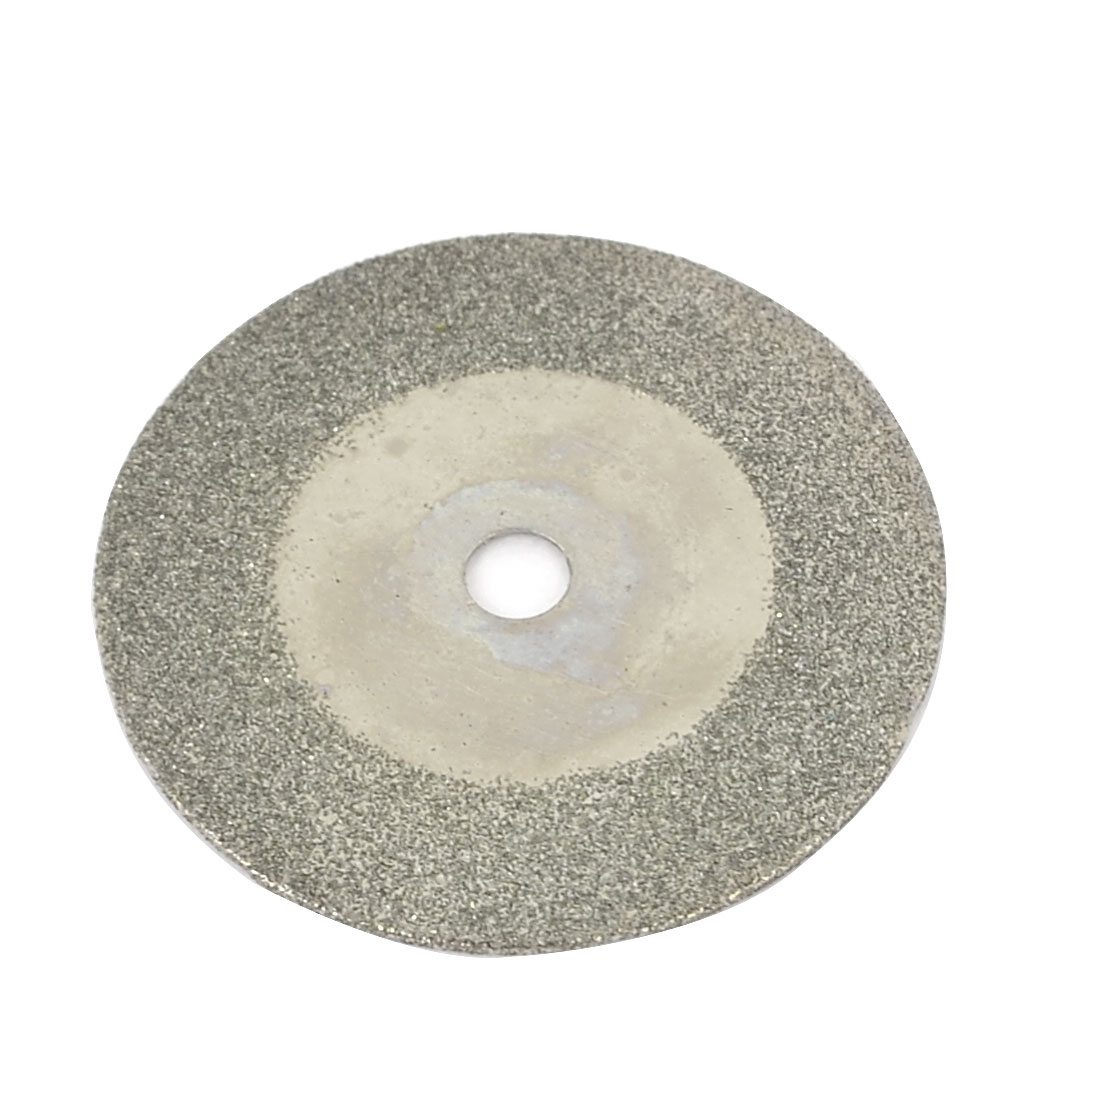 Silver Tone 25mm Dia Diamond Coated Glass Grinding Cutting Cut-off Wheel Disc